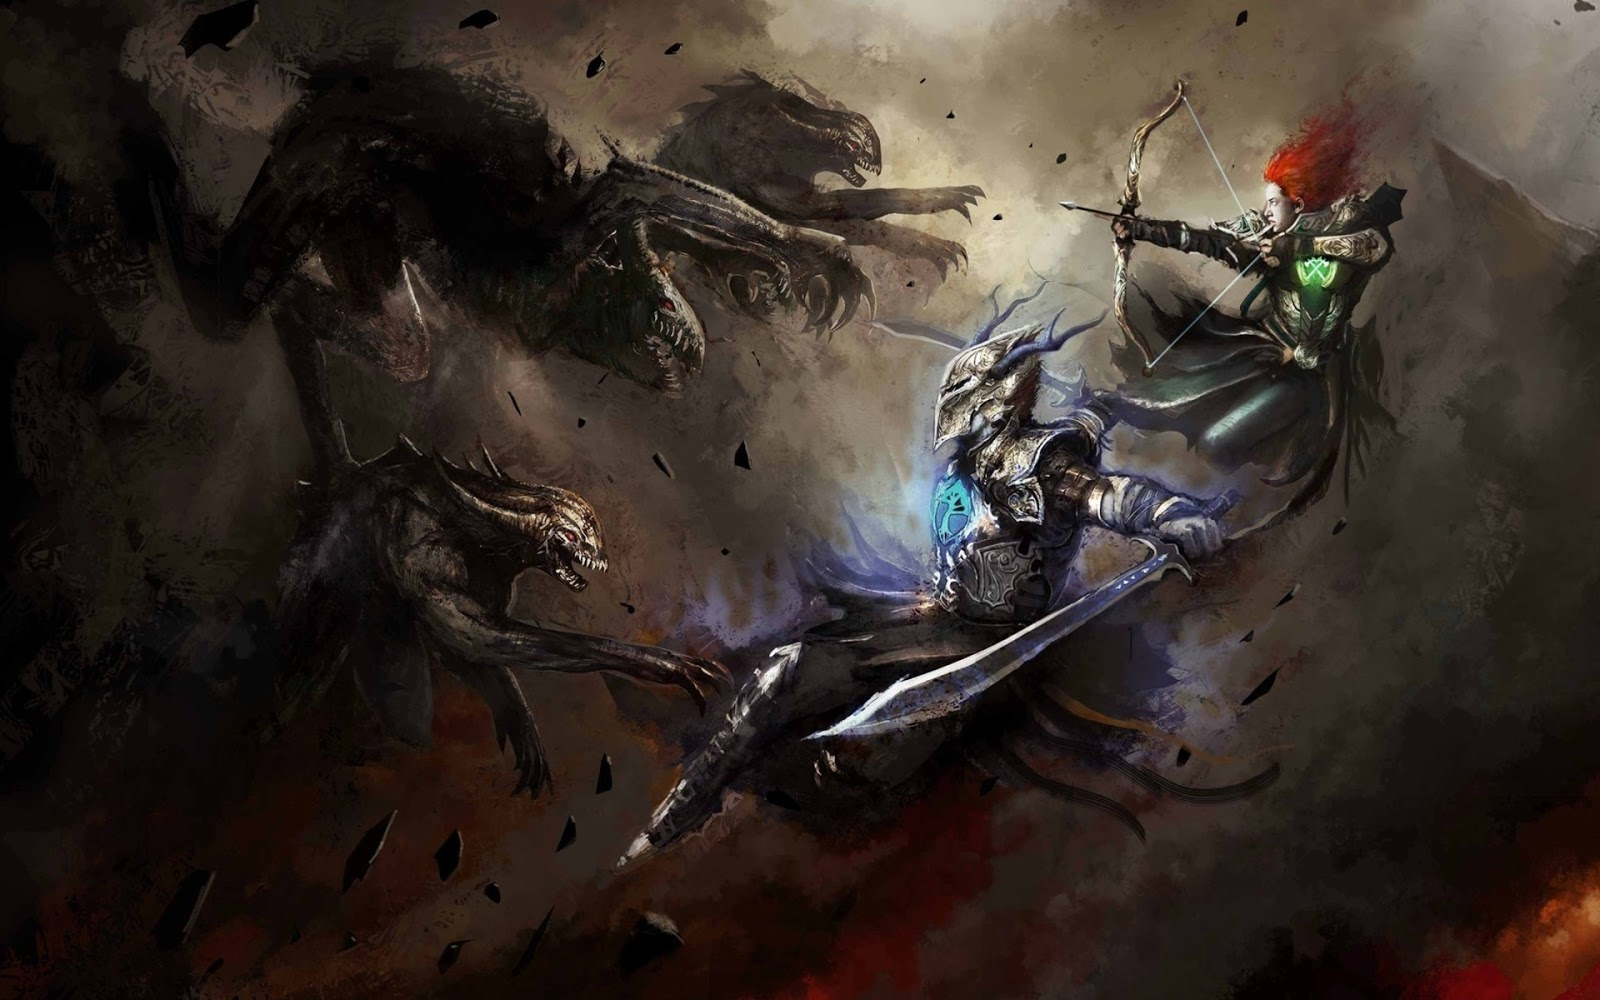 Beast Fighting Armor Sword Bow Fantasy HD Wallpaper Backgrounds Photo 1600x1000